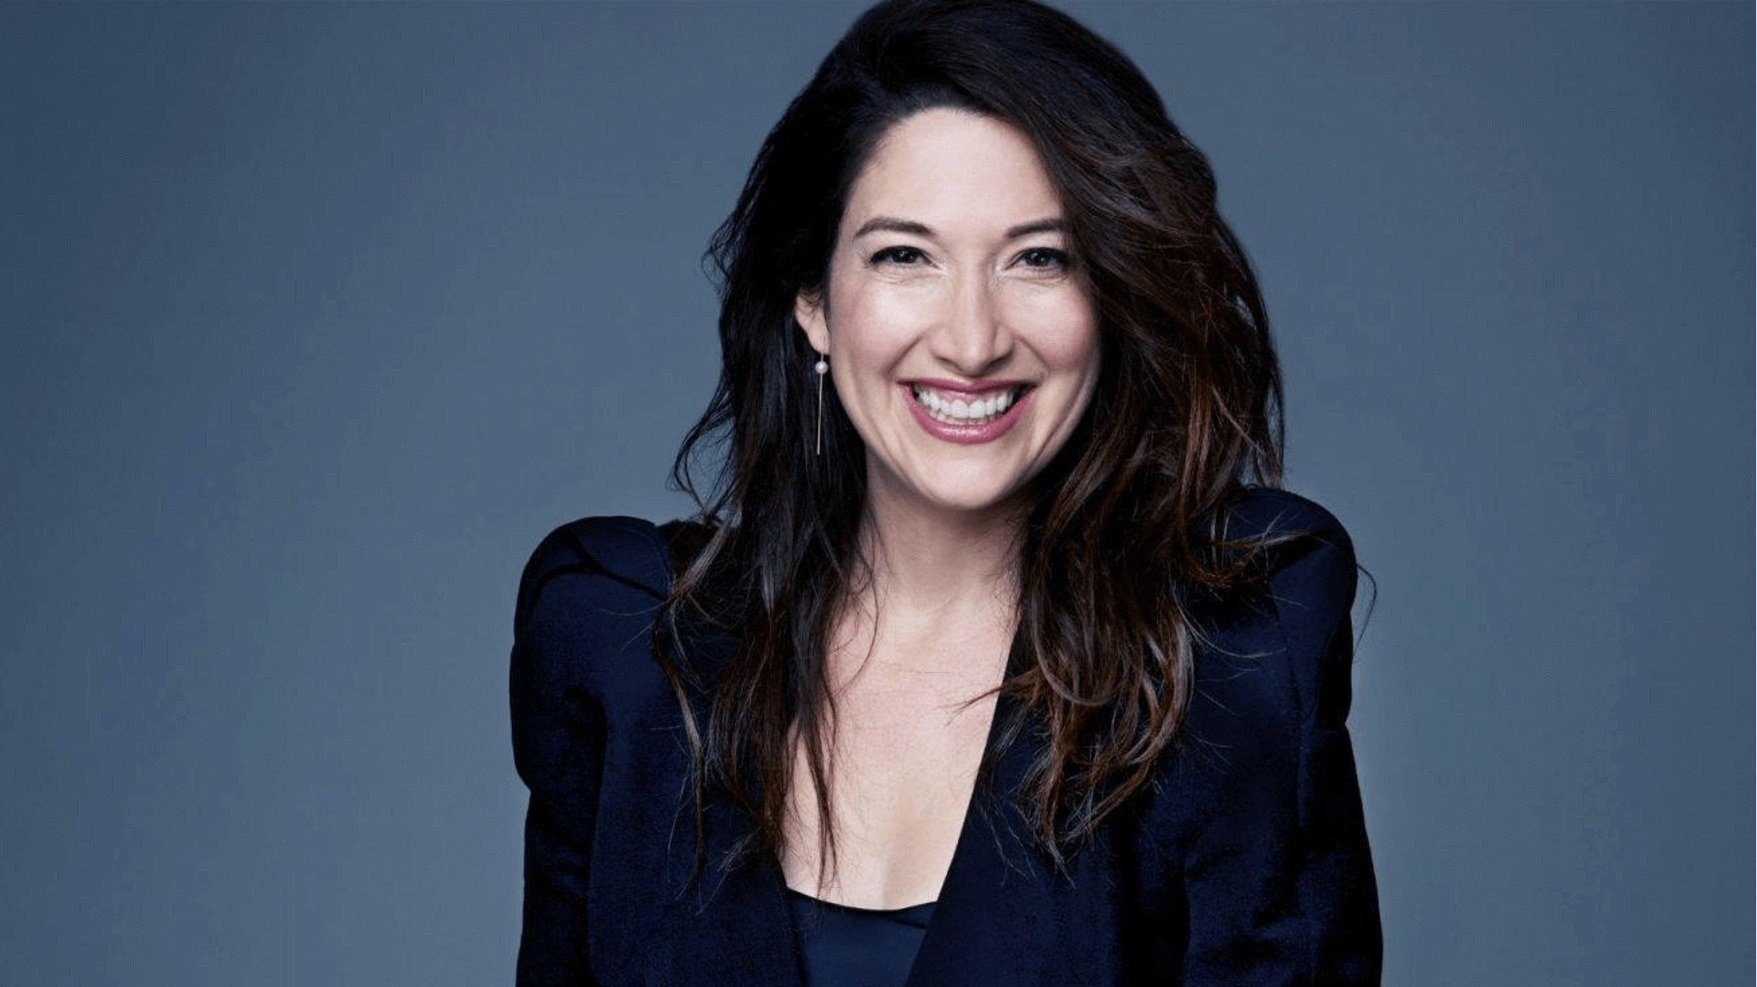 Randi Zuckerberg exposes sexual harassment on Alaska Airlines